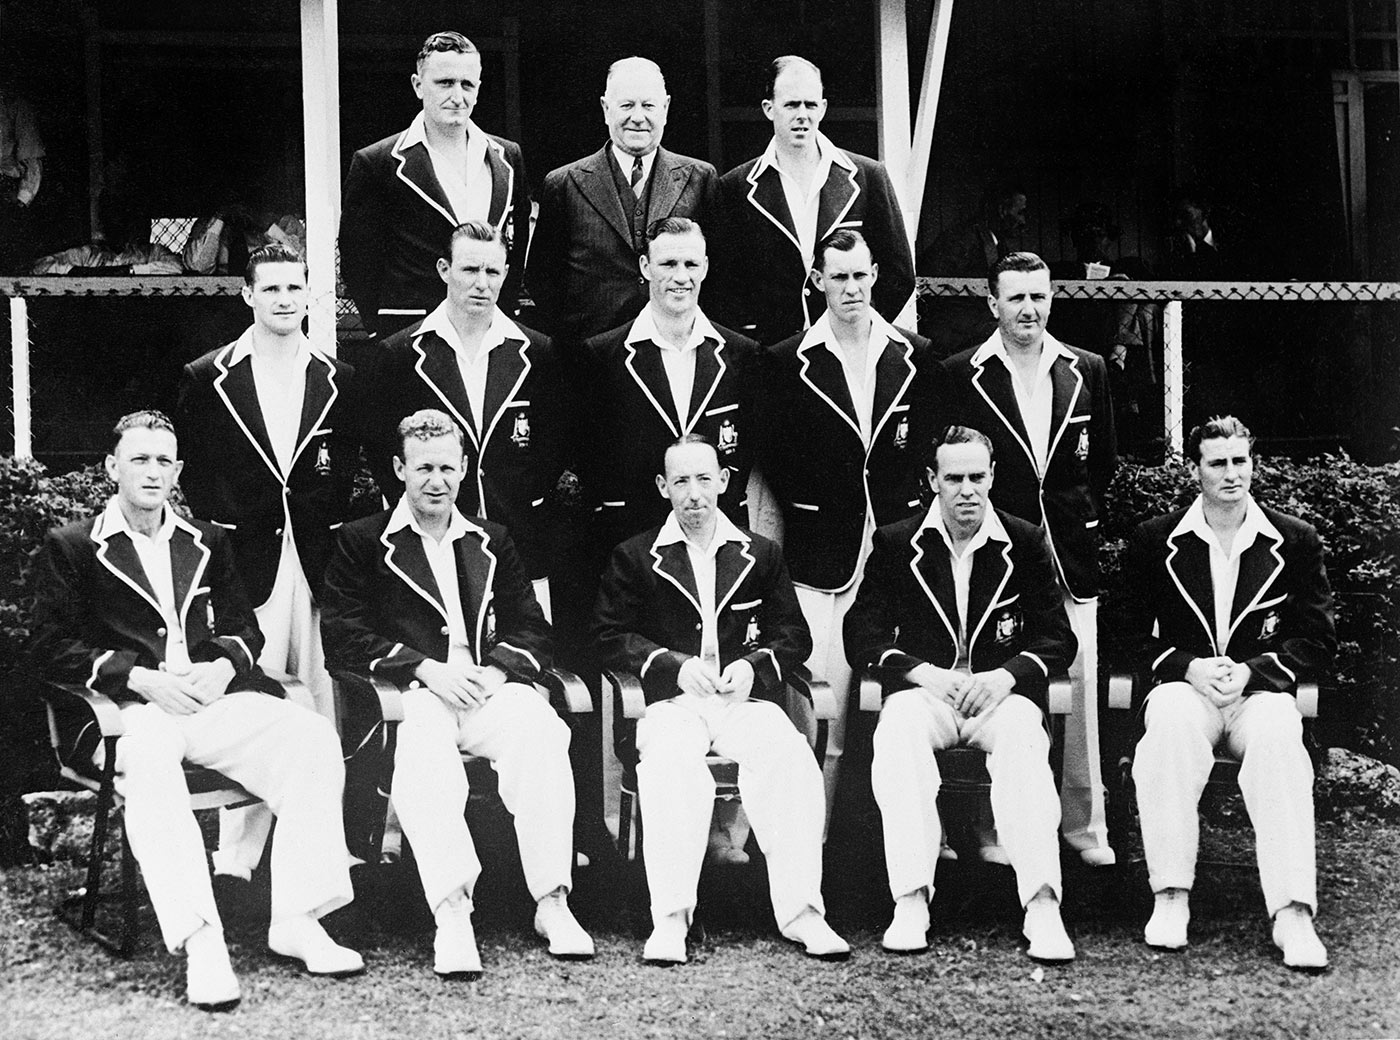 An Australia team picture from the 1950 Ashes. Archer is fourth from left, middle row; his good mate Arthur Morris second from left, bottom row; Australia's second oldest Test cricketer now, Neil Harvey is first at left, middle row